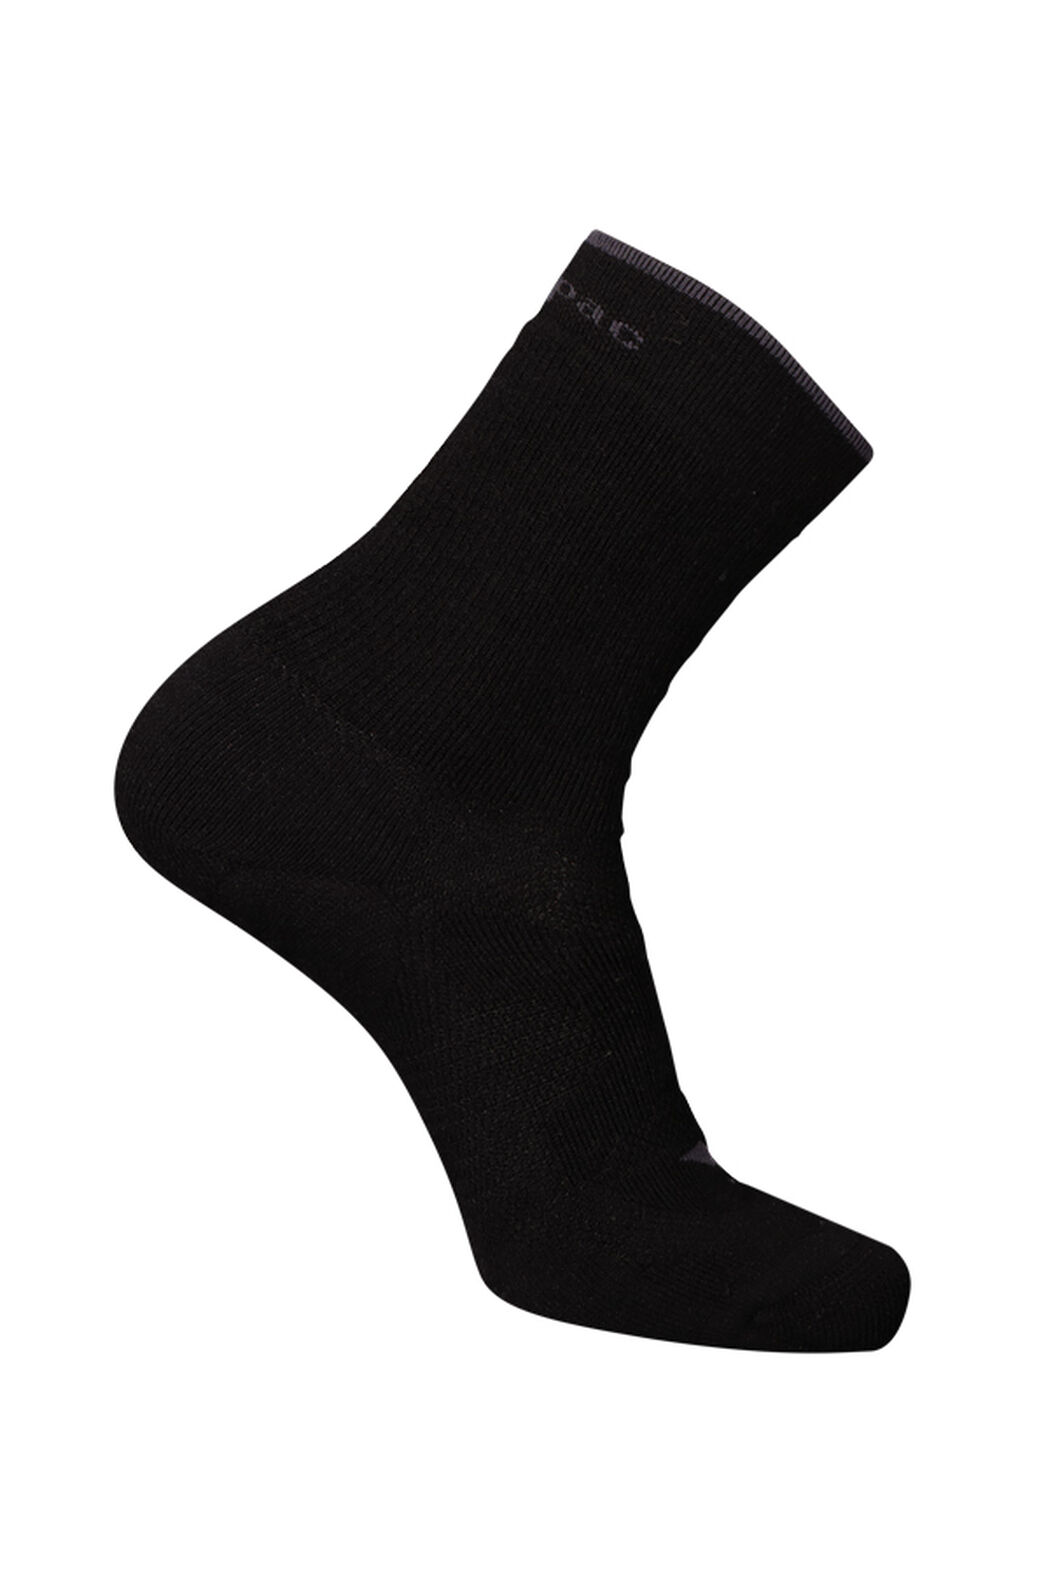 Merino Hiker Socks, Black, hi-res